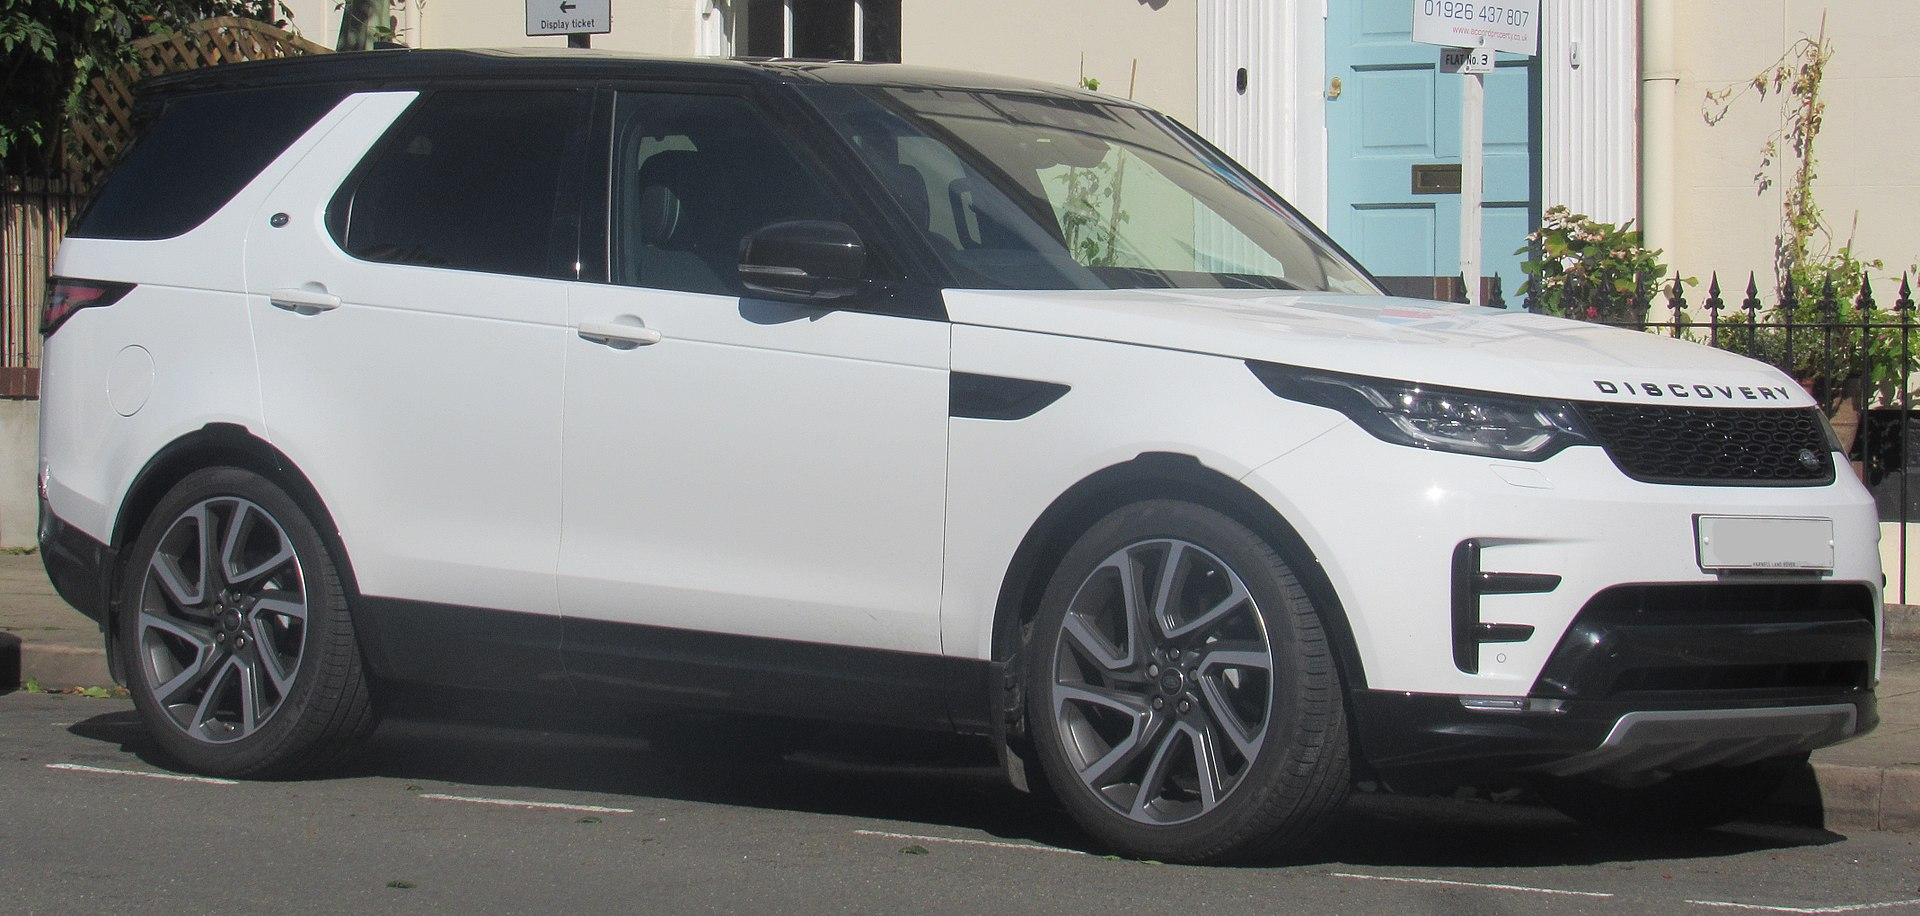 Vehicle - Vehicle - Automobile - Land Rover - Discovery